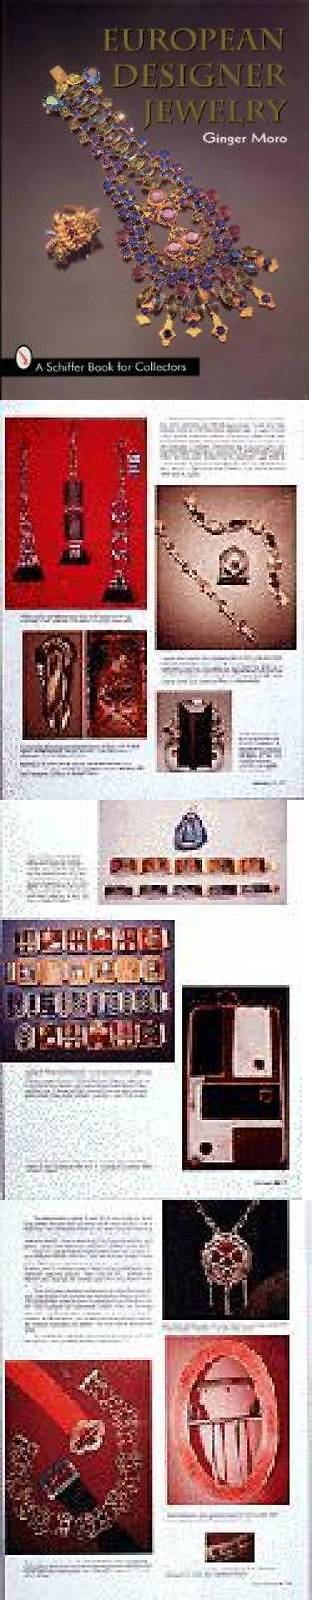 Price Guides and Publications 171122 European Designer Jewelry Book